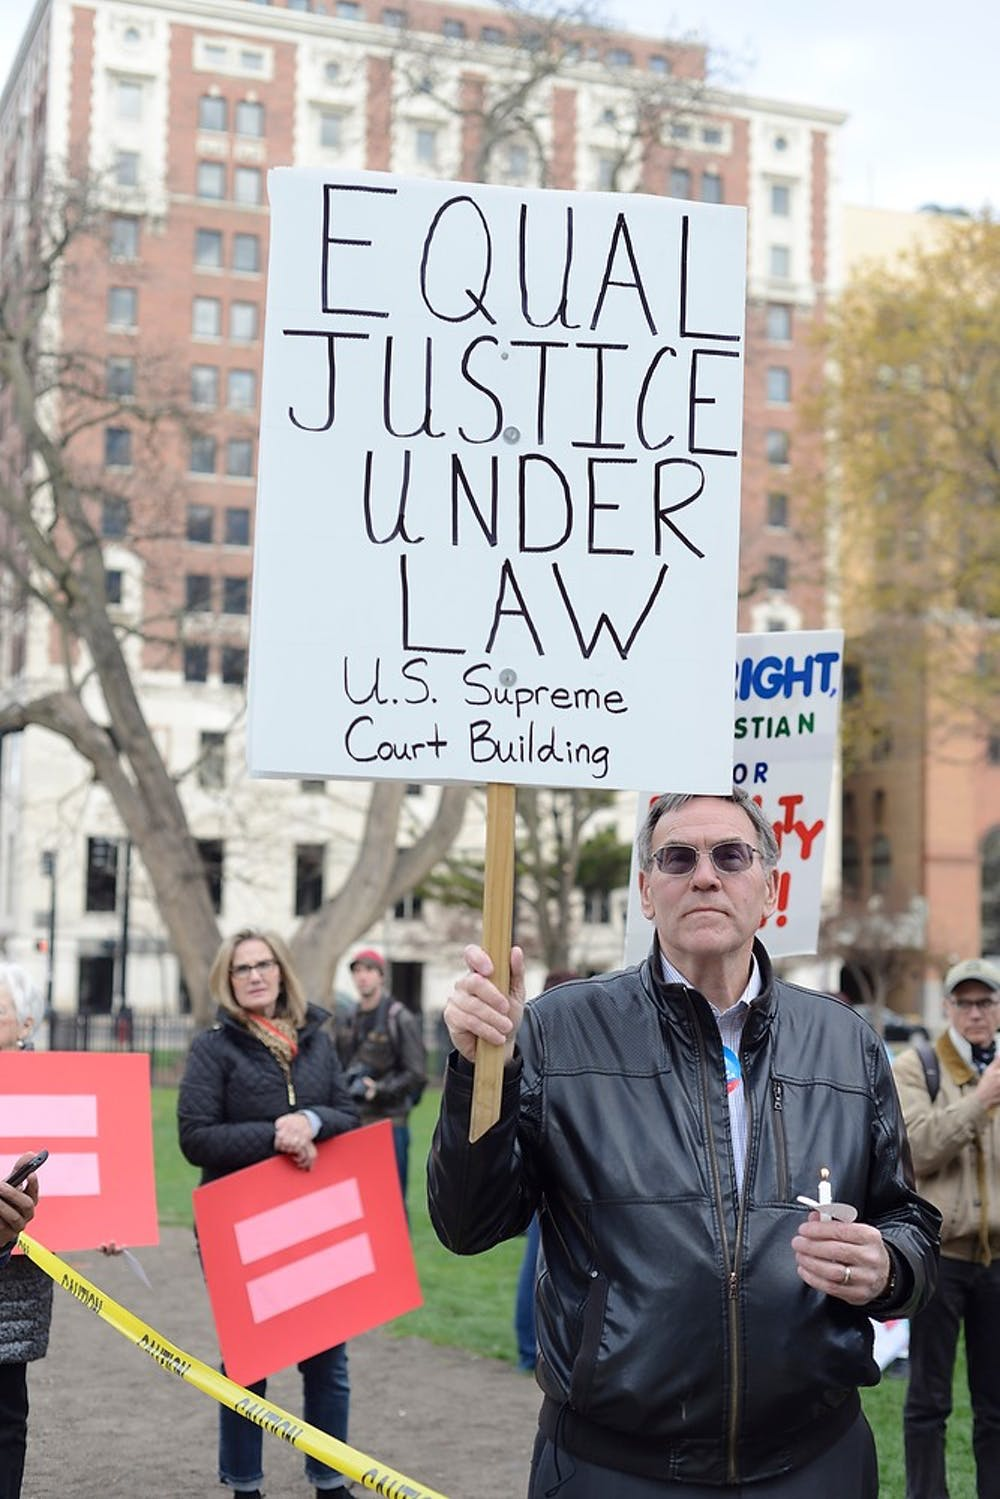 <p>Kalamazoo resident Lorence Wenke stands to support same-sex marriage April 27, 2015, at the Lansing Capit0l. The vigil was held in anticipation of the same-sex marriage trials in the U.S. Supreme Court. Hannah Levy/The State News</p>